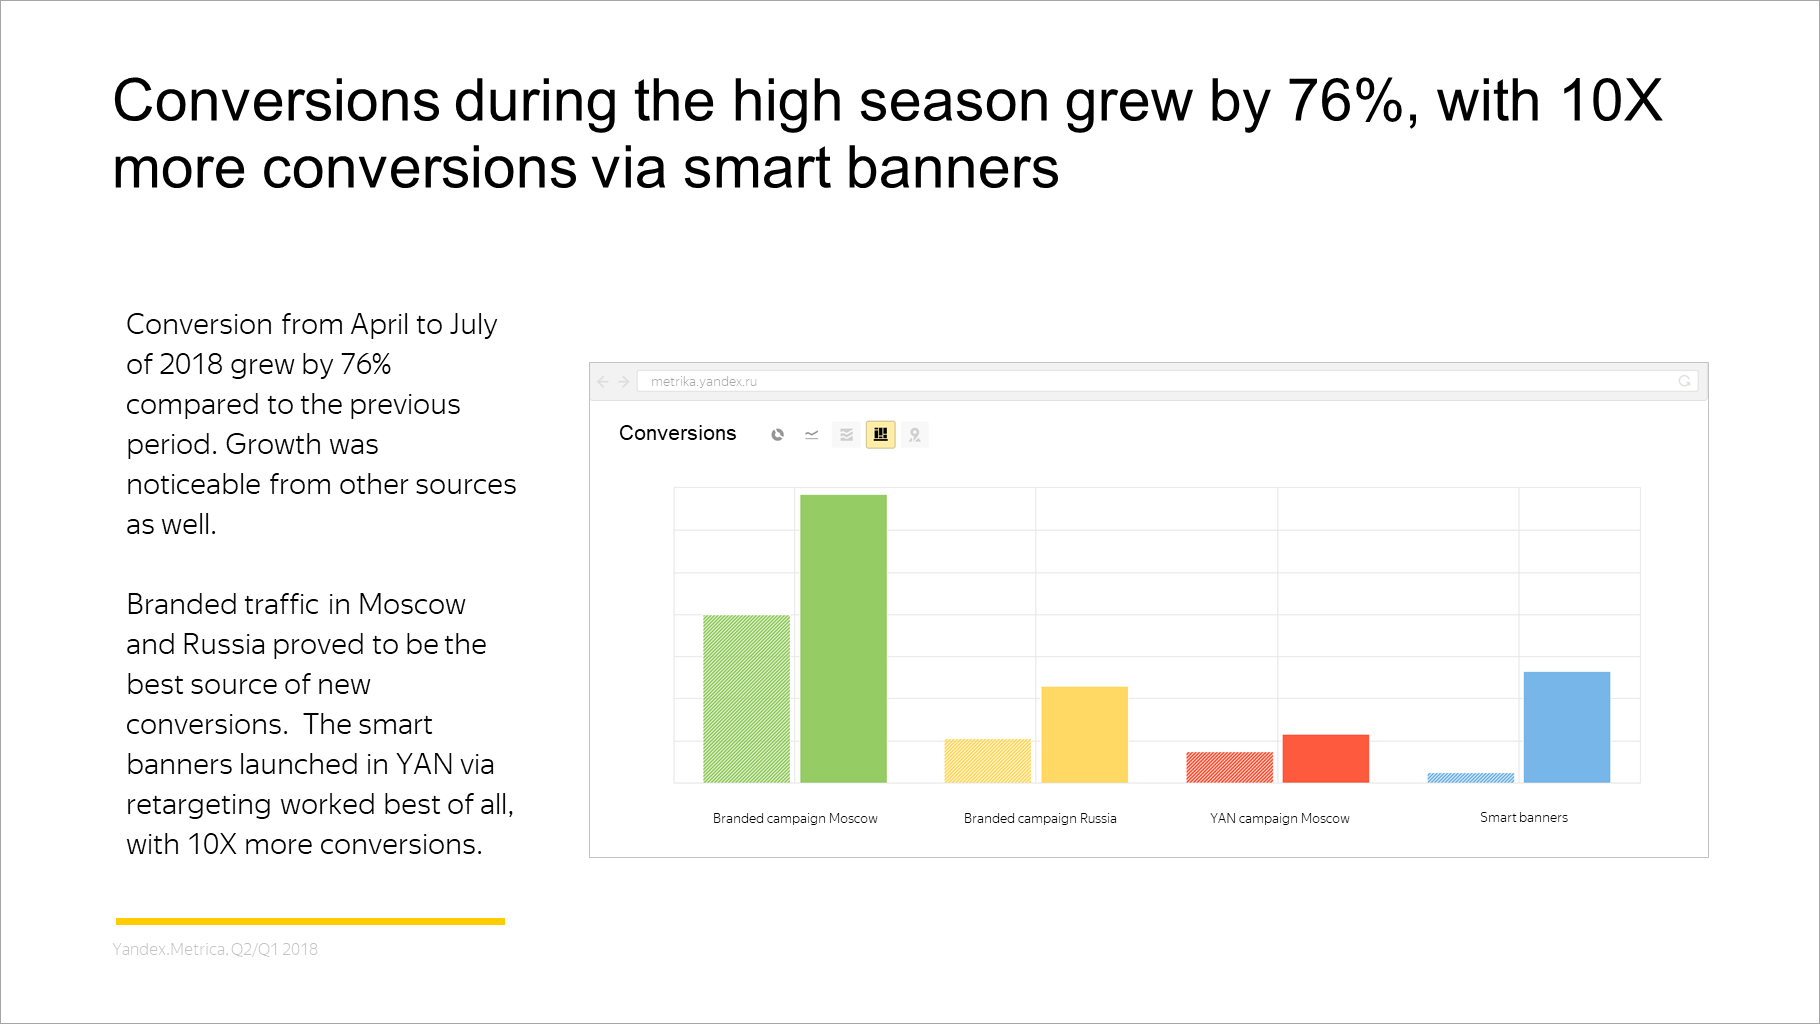 Conversions during the high season grew by 76%, with 10X more conversions via smart banners